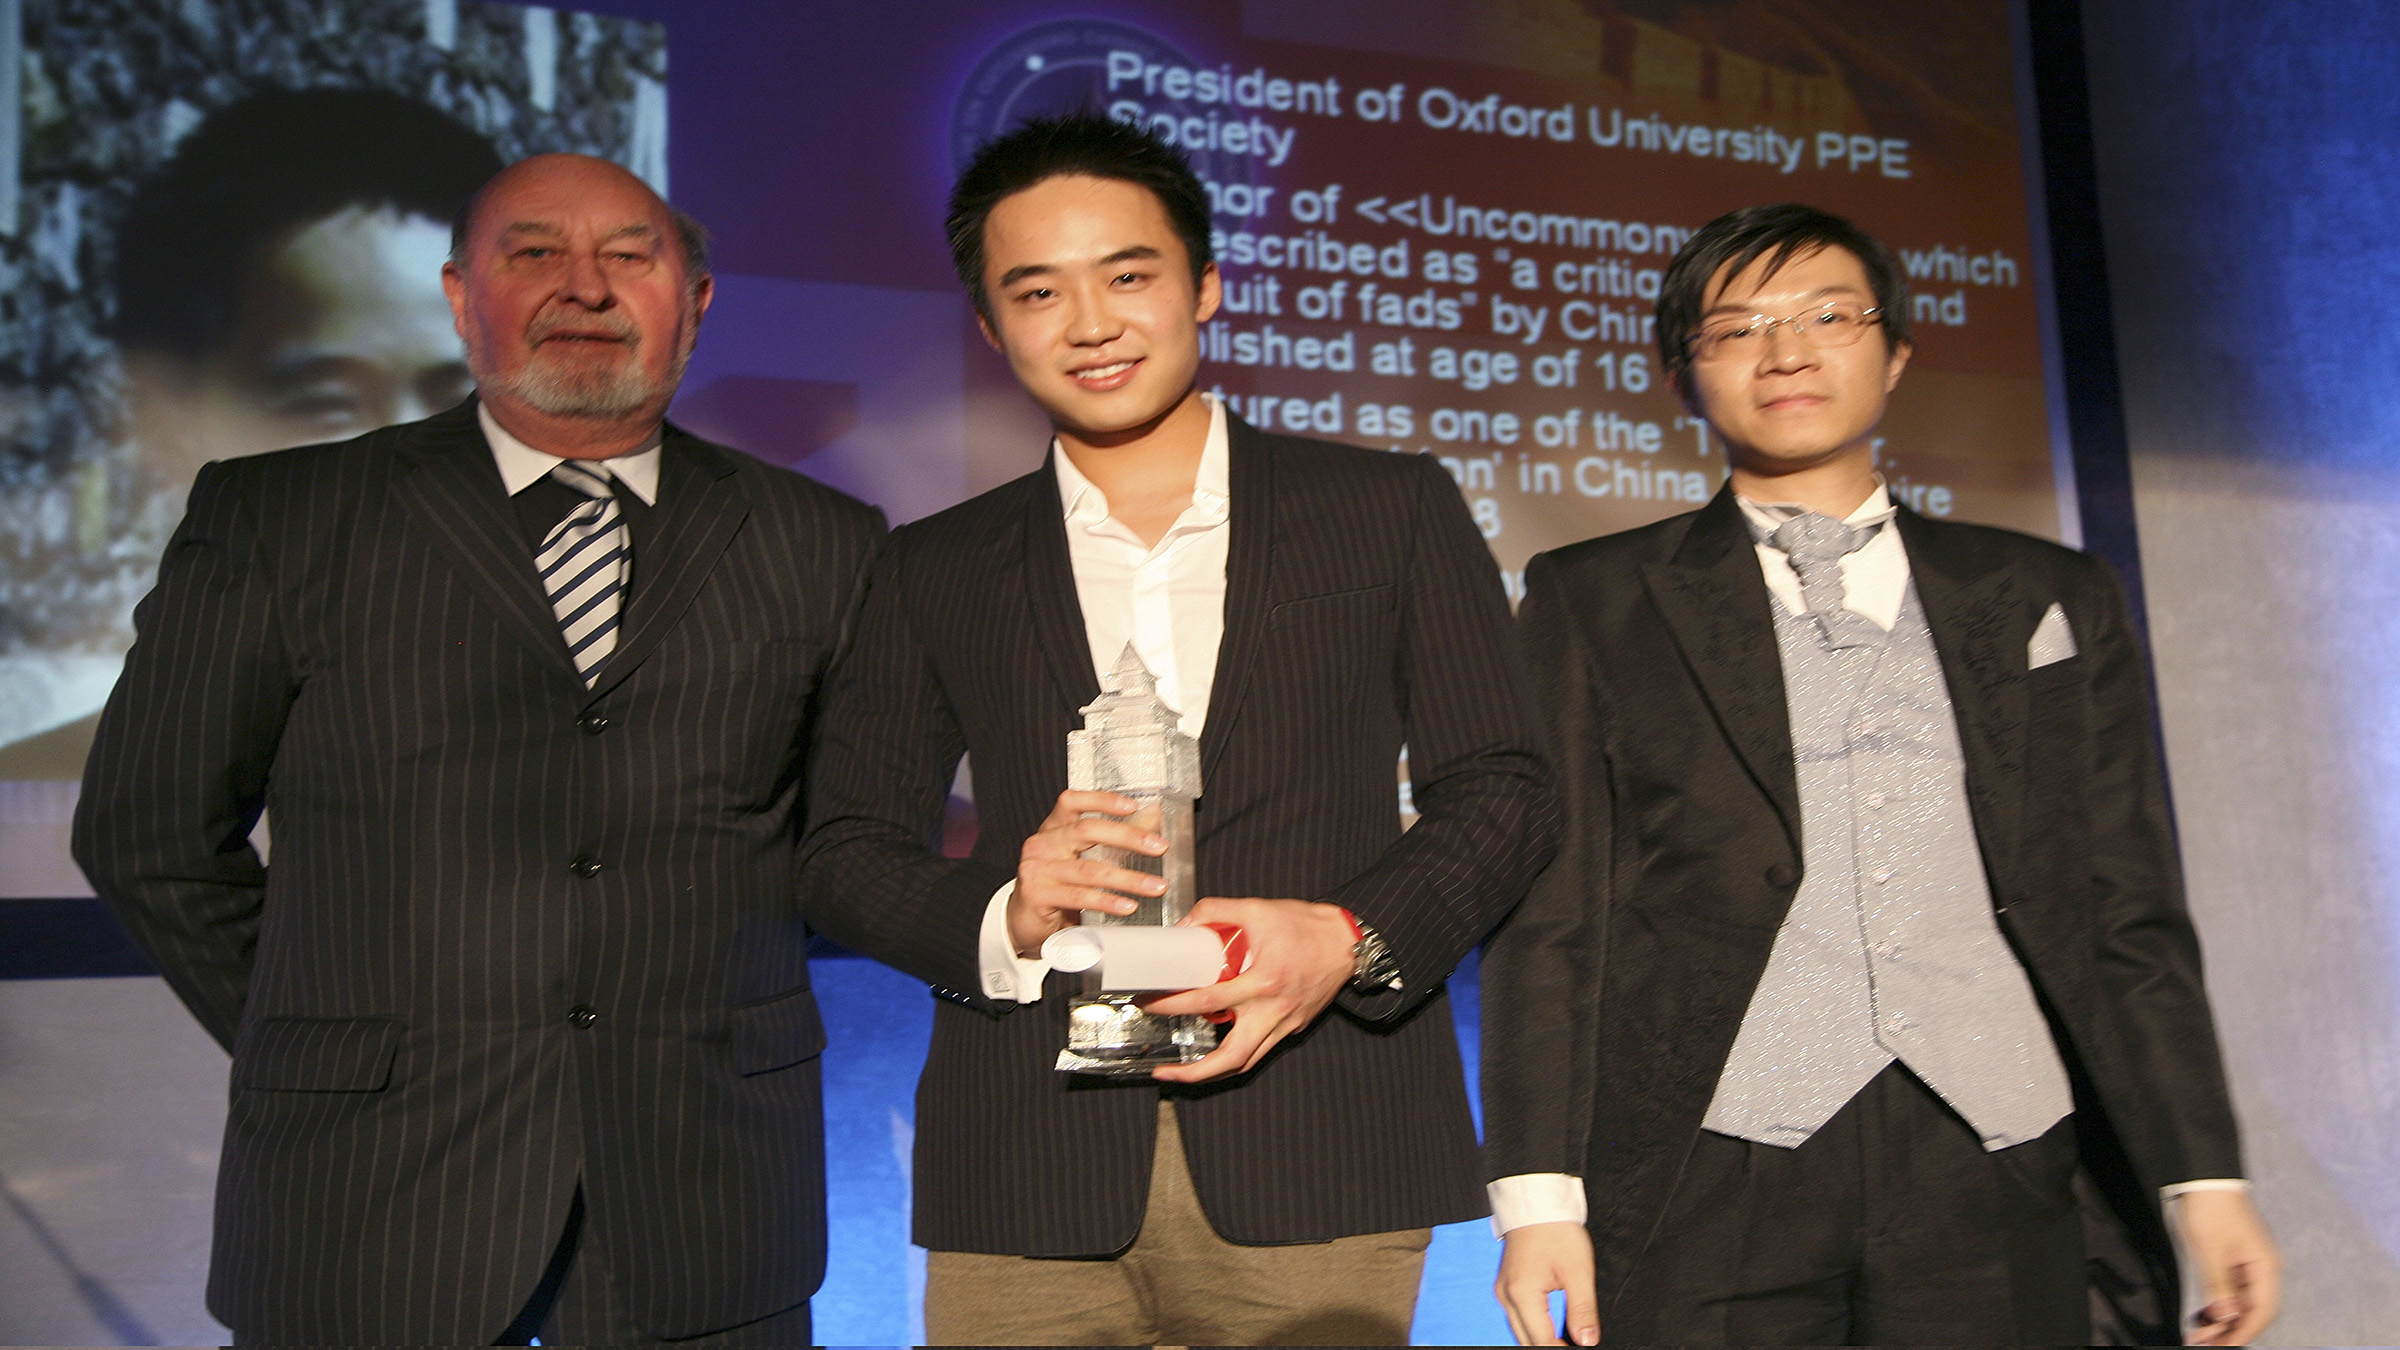 Bo Guagua (C), son of China's former Chongqing Municipality Communist Party Secretary Bo Xilai, poses for a photograph with officials after receiving the trophy for UK Ten Oustanding Chinese Young Persons in London, in this May 9, 2009 file photo. Bo Guagua, a 24-year-old descendant of Chinese Communist royalty, seemed destined to one day become a rich and powerful businessman in an economy that in his lifetime would become the world's largest. His pedigree, elite schooling, easy confidence and connections left those who knew him in no doubt he would pursue a business career and amass a fortune. That was until a British expatriate, Neil Heywood, died in November 2011 in a hotel in a huge city in western China, a world away from the clipped lawns and hushed libraries of Harvard University where Bo was studying. The story now looks certain to ruin his family and upend his ambitions. REUTERS/Stringer (BRITAIN - Tags: POLITICS CRIME LAW) CHINA OUT. NO COMMERCIAL OR EDITORIAL SALES IN CHINA - RTR30PIA